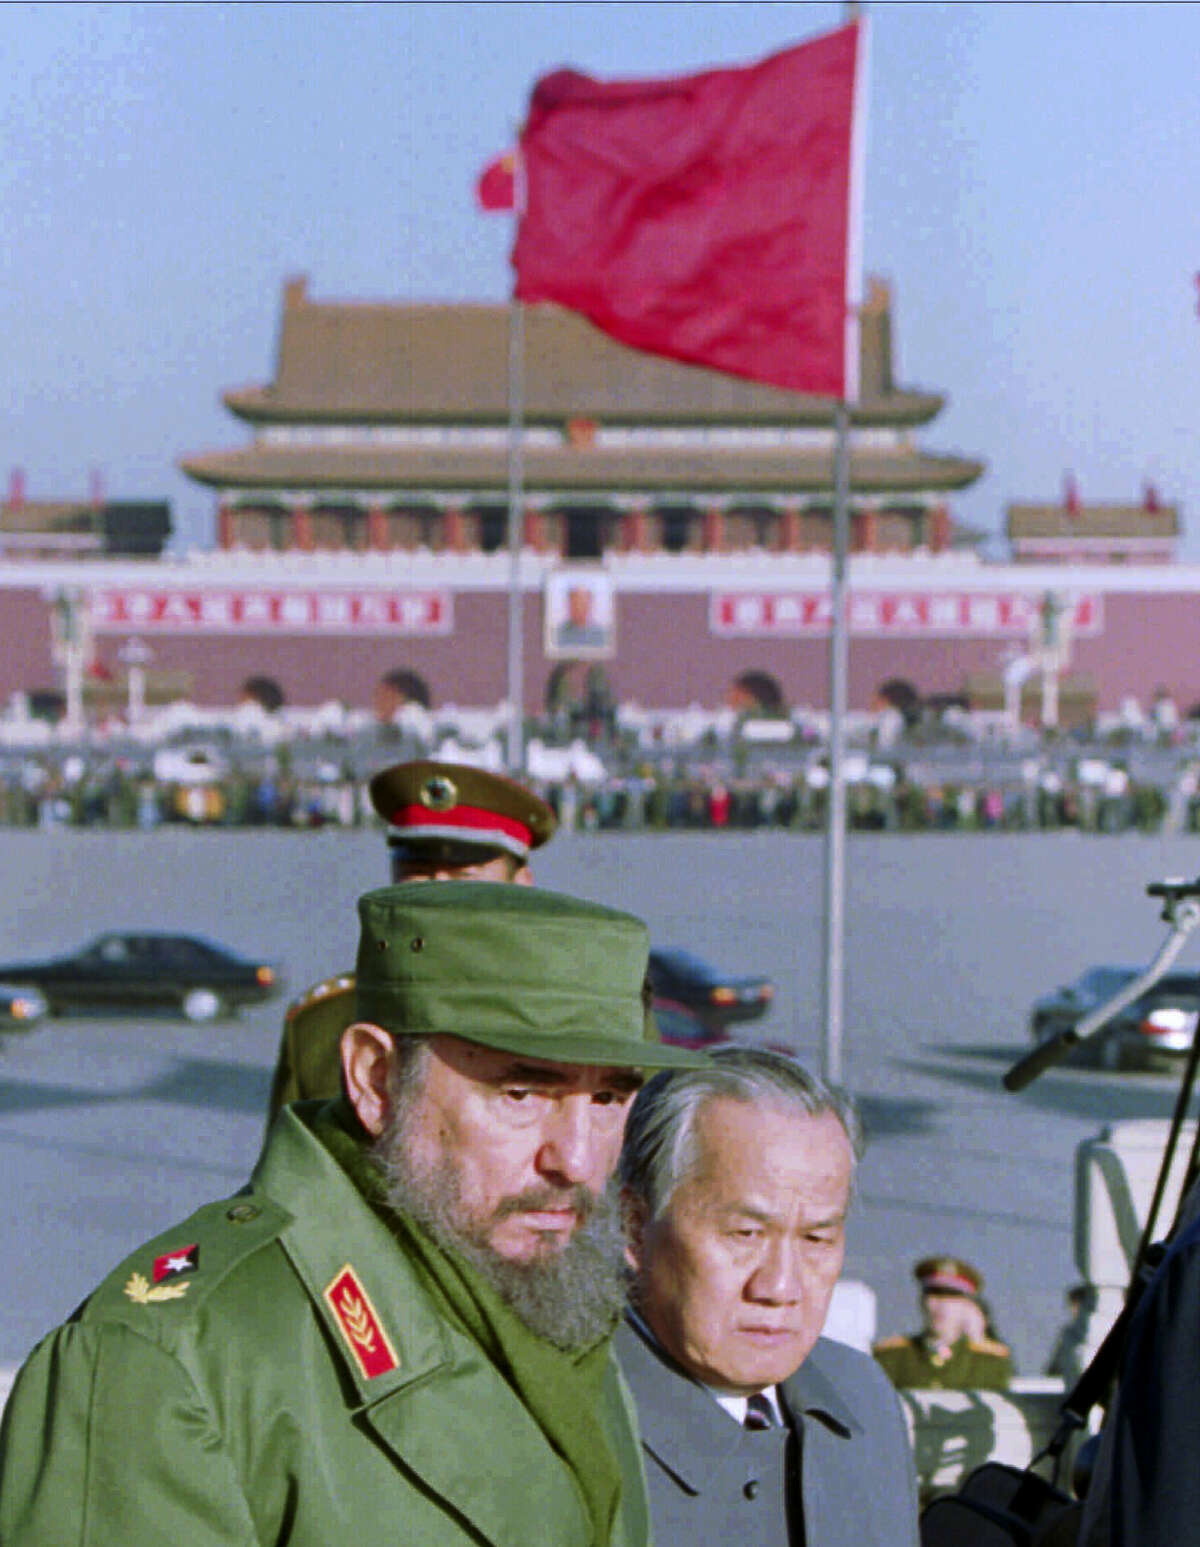 In this Dec. 2, 1995, file photo, Cuban President Fidel Castro tours Beijing's Tiananmen Square after laying a wreath at the Monument to the People's Heroes, which commemorates fallen communist revolutionaries. Castro, who led a rebel army to victory in Cuba, embraced Soviet-style communism and defied the power of 10 U.S. presidents during his half century rule, died at age 90 on Friday, Nov 25, 2016. Viewed from the world'Äôs largest communist country, Castro'Äôs death is a reminder of how the communist axis has changed beyond recognition since the ideologically charged era when the bearded revolutionary cut a dashing figure on the world stage alongside leaders like Mao Zedong.